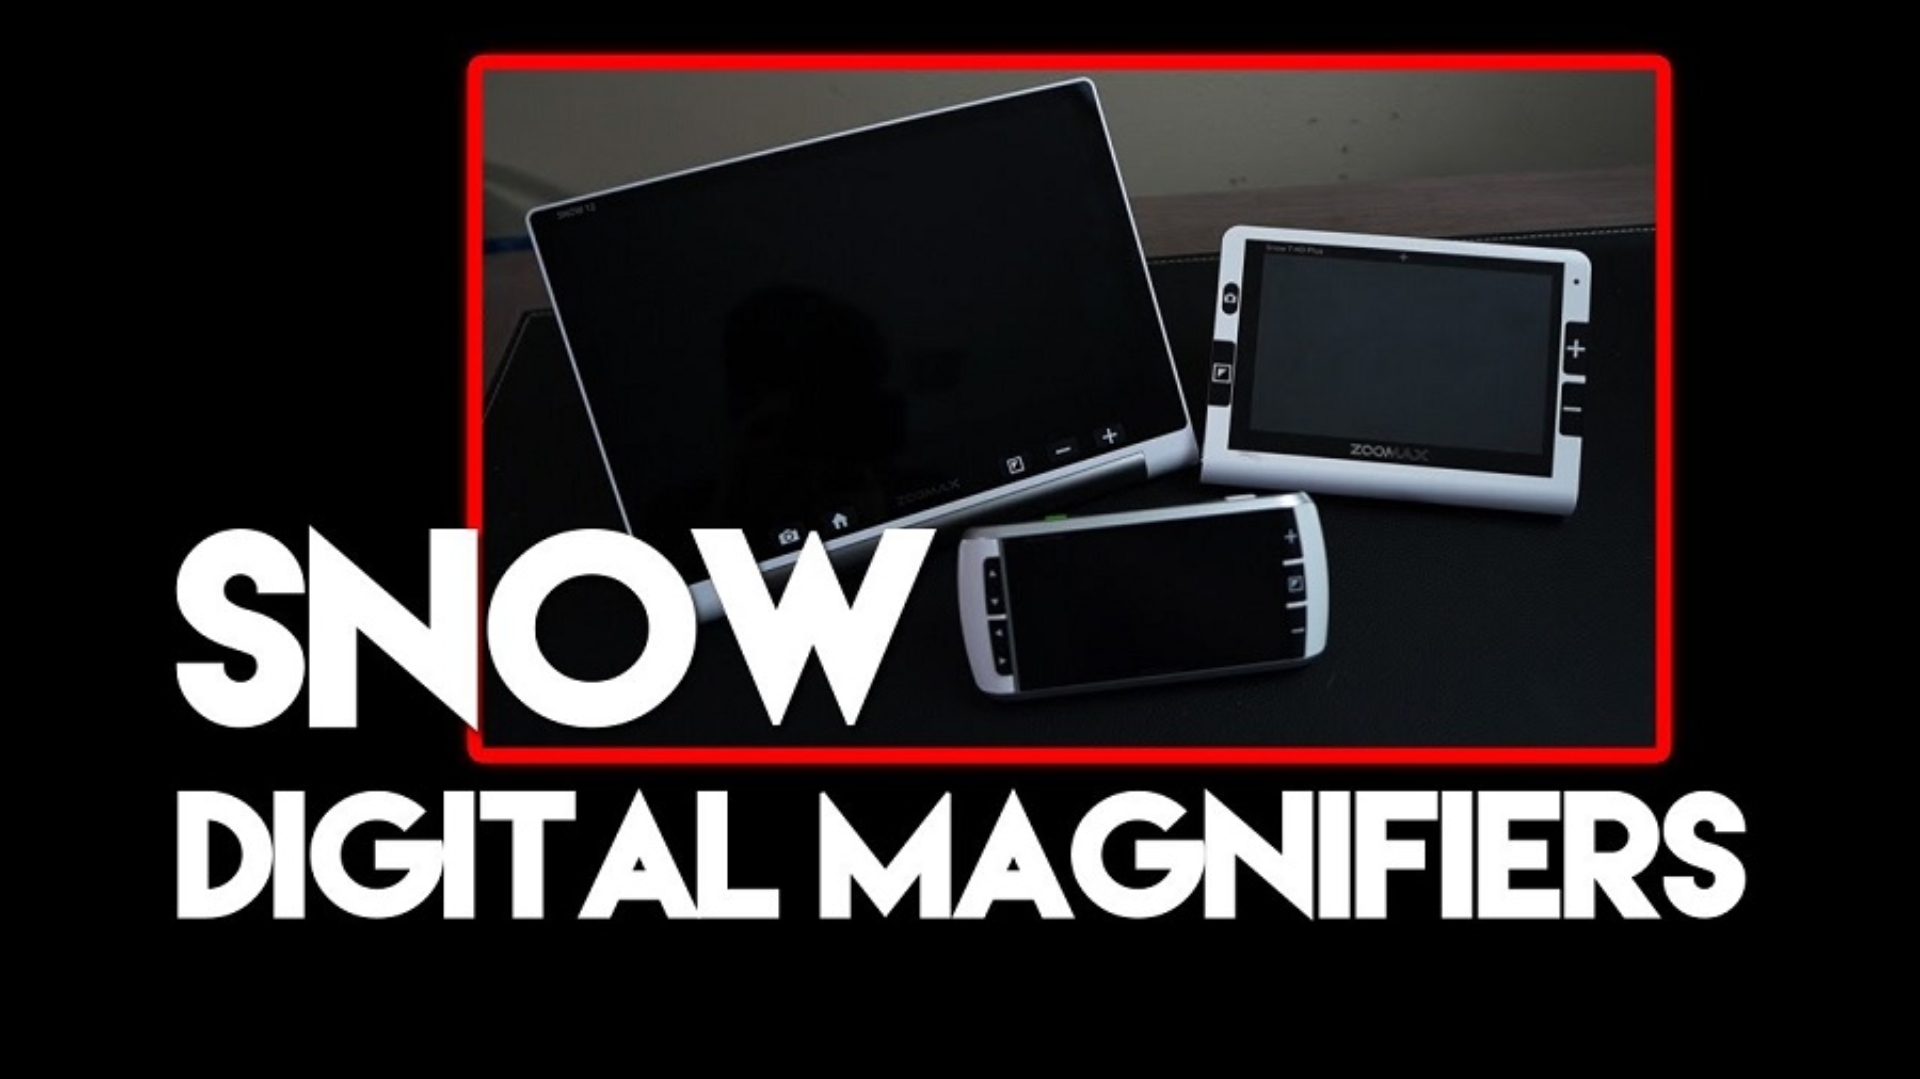 The Snow Digital Magnifier